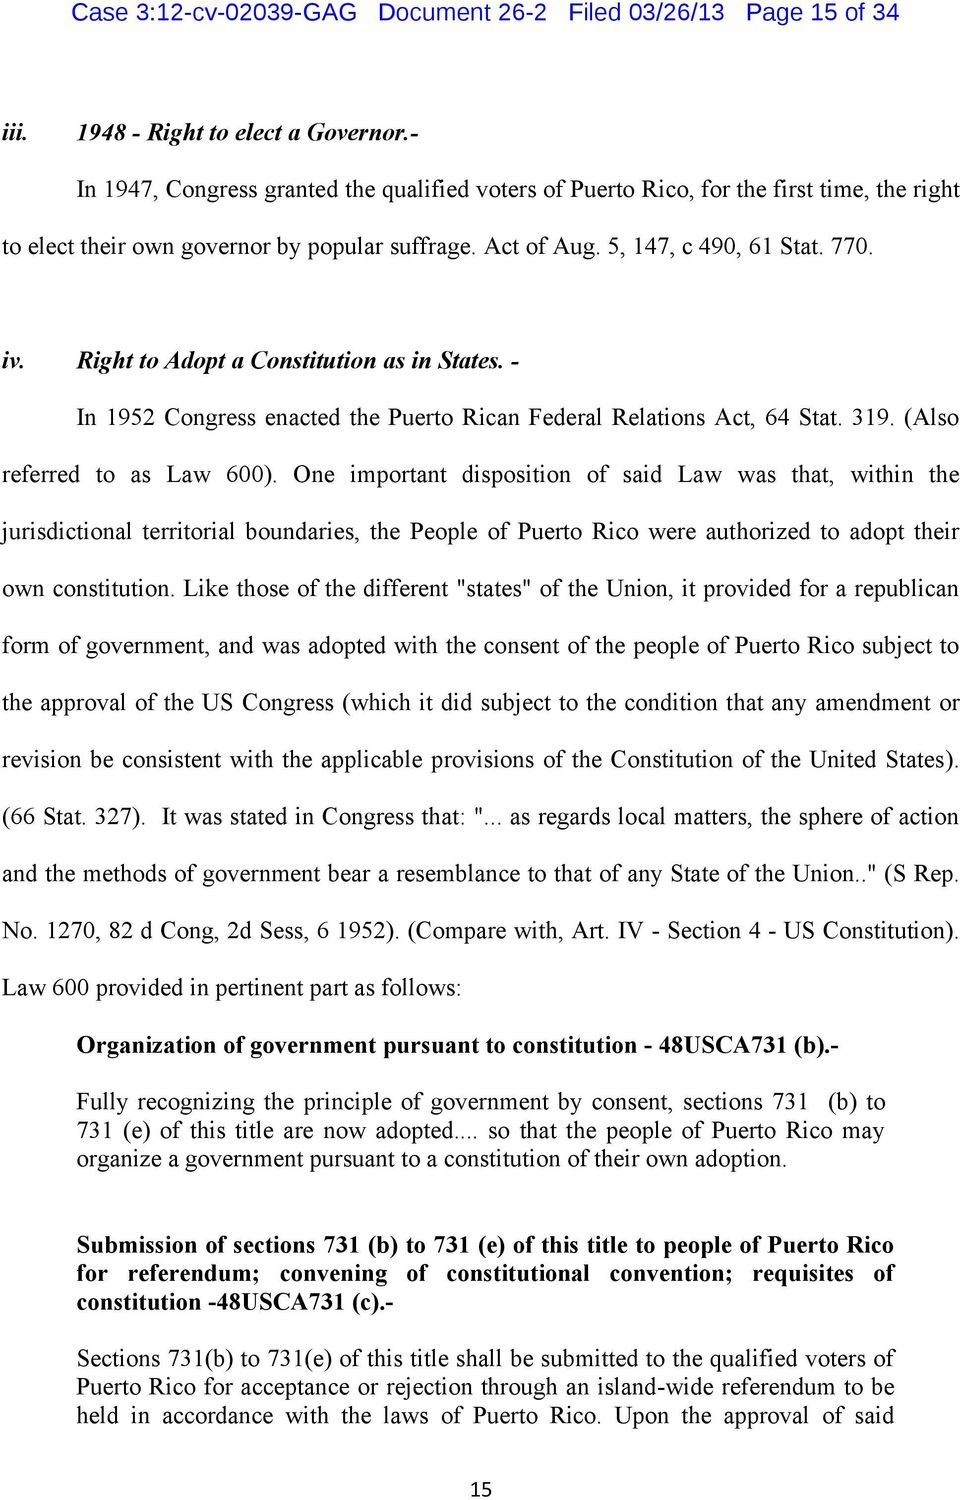 Right to Adopt a Constitution as in States. - In 1952 Congress enacted the Puerto Rican Federal Relations Act, 64 Stat. 319. (Also referred to as Law 600).